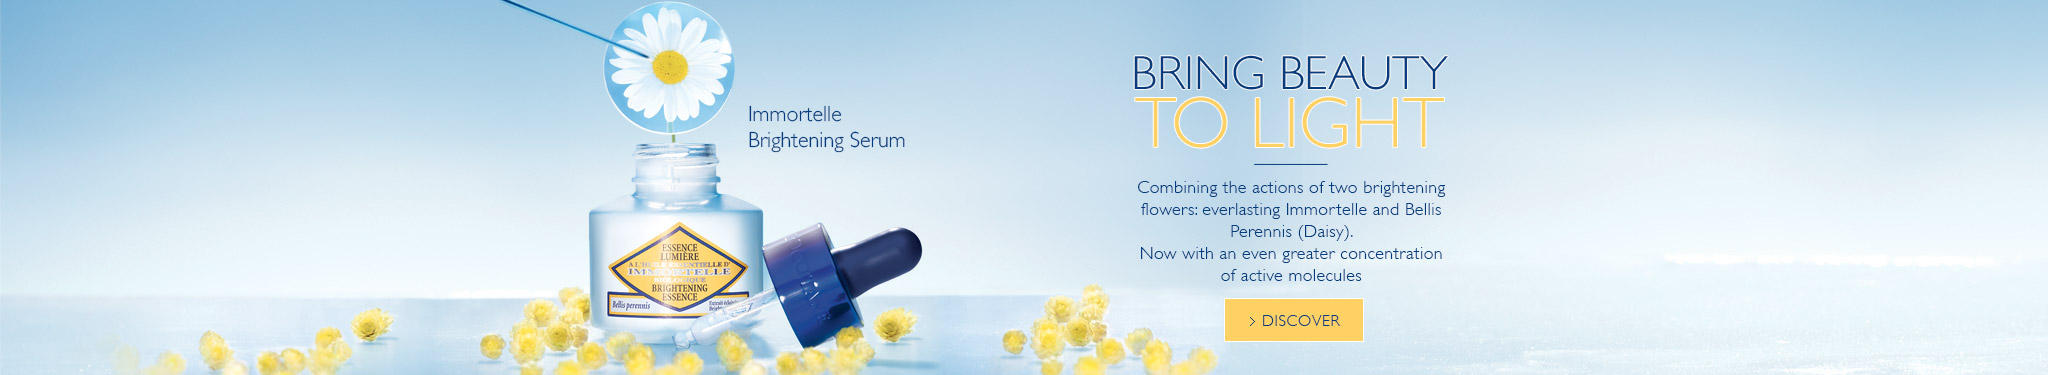 New Immortelle Serum